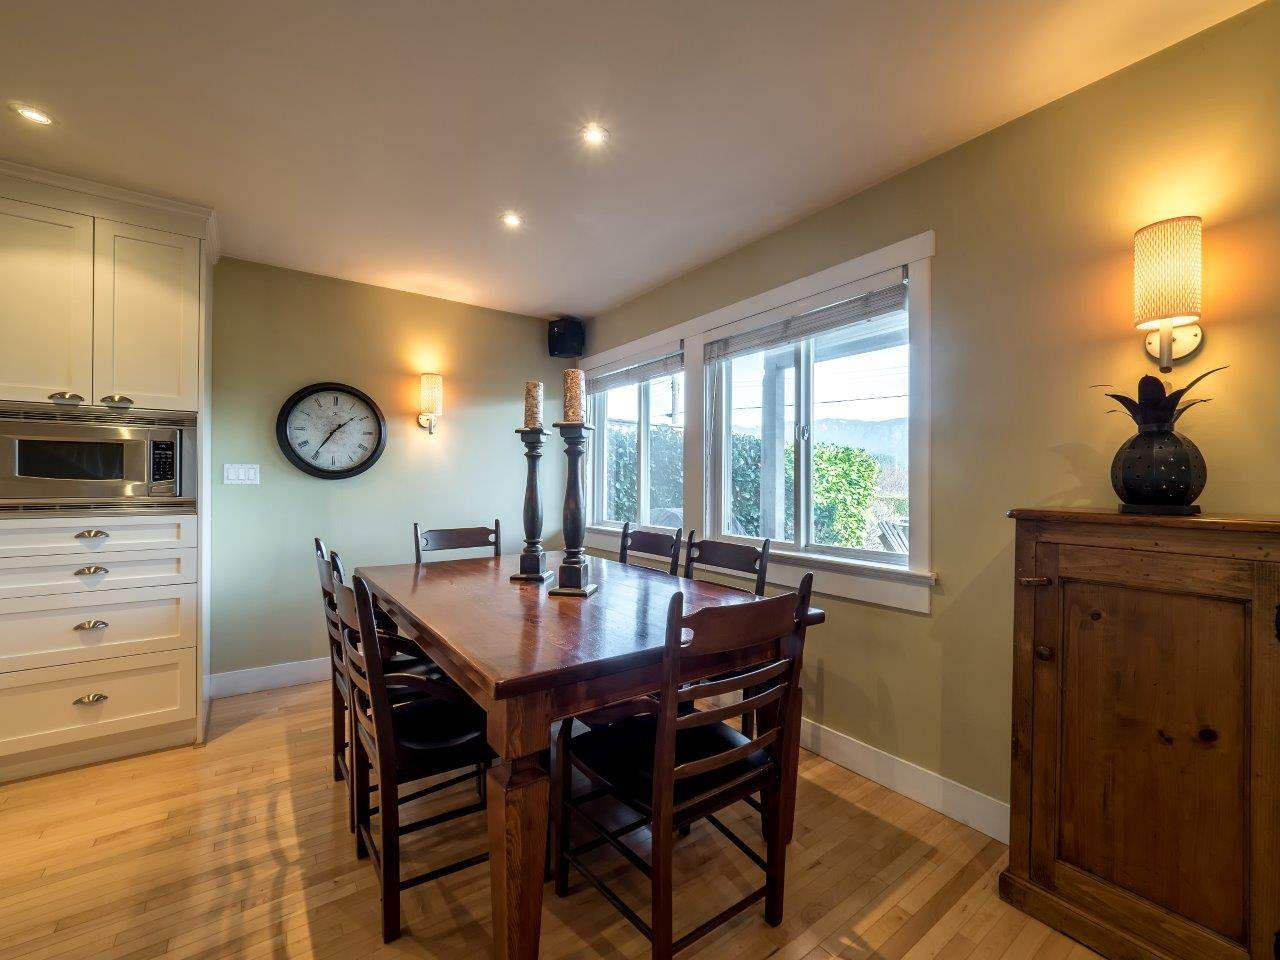 Photo 5: Photos: 345 BEACHVIEW DRIVE in North Vancouver: Dollarton House for sale : MLS®# R2035403